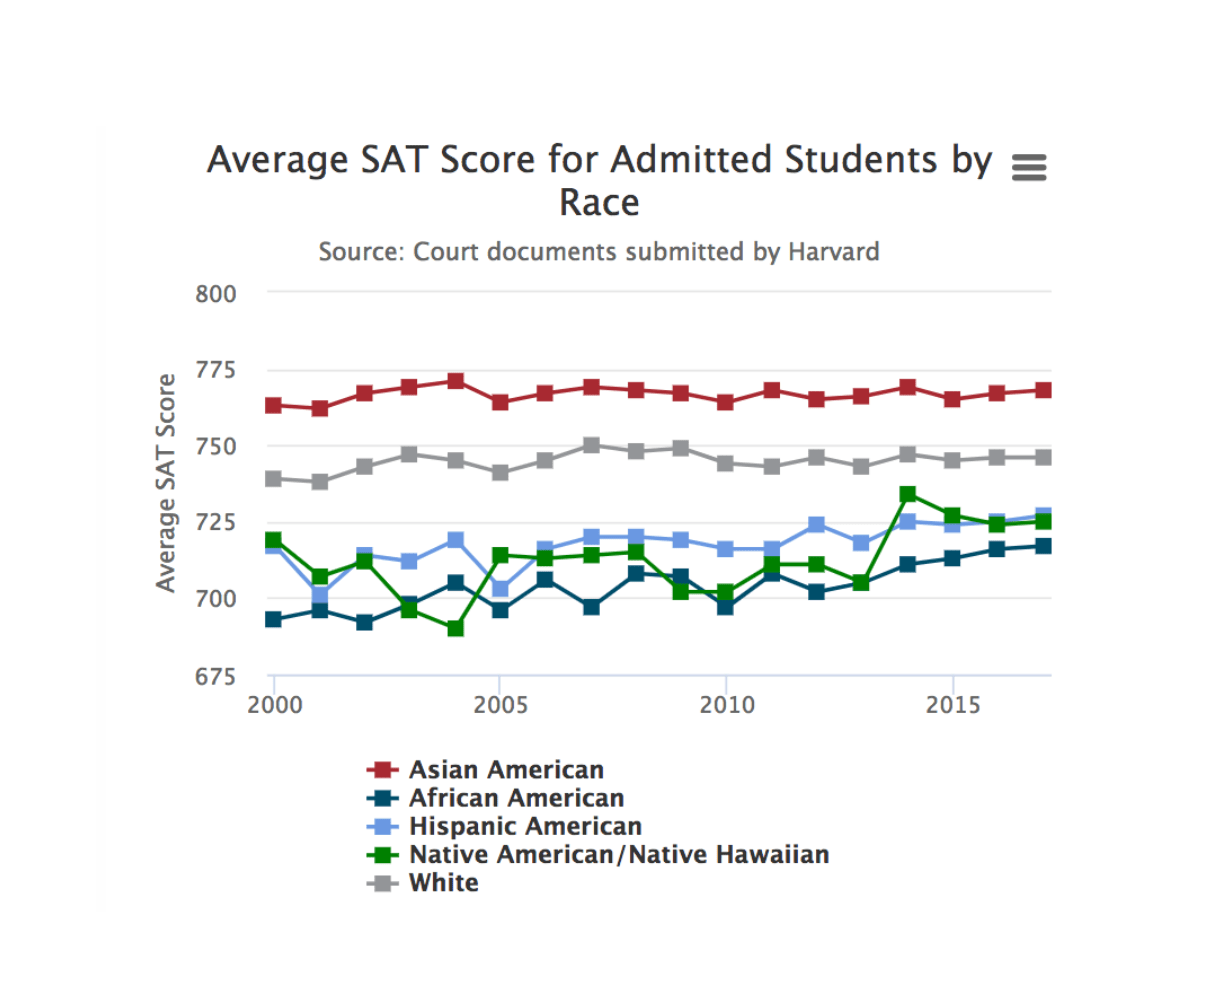 SAT score for admitted students by race at Harvard